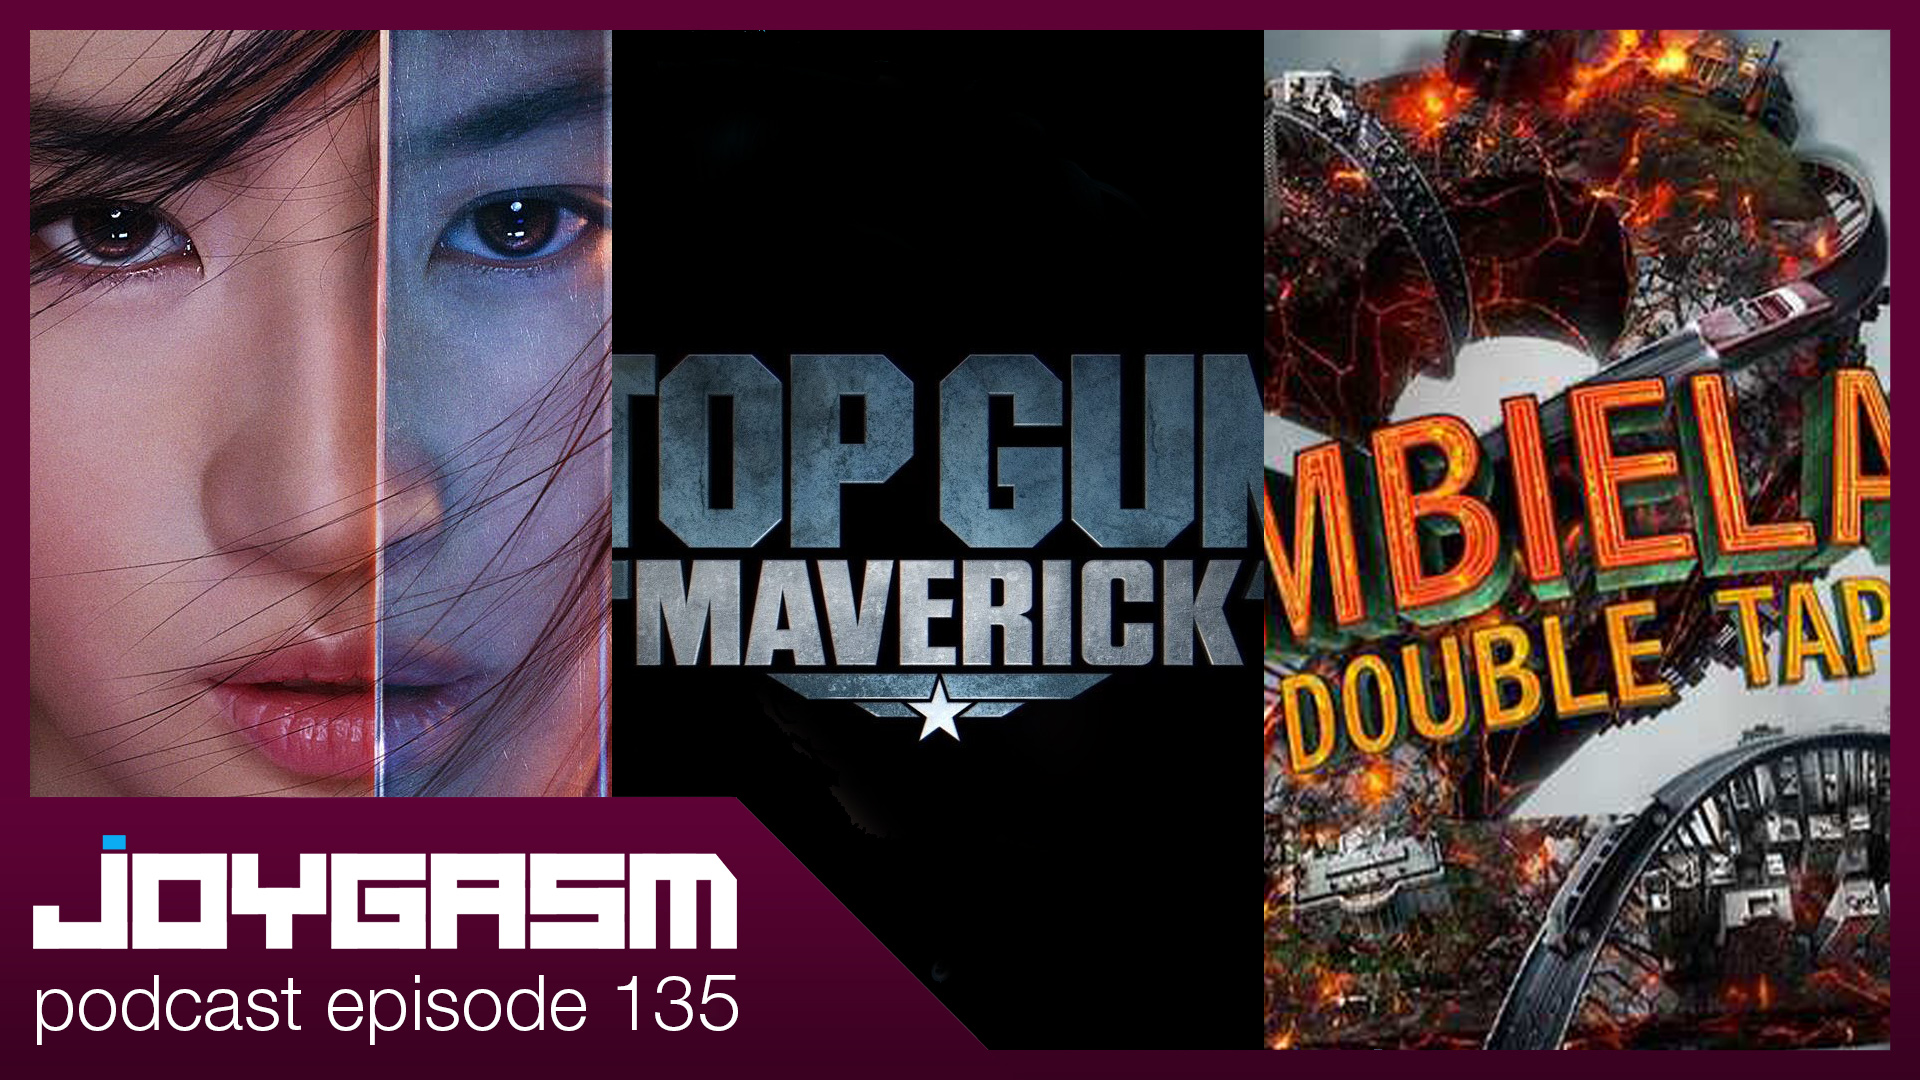 Ep. 135: Mulan, The Kingsman, It 2, Top Gun 2, A Beautiful Day In The Neighborhood, & Zombieland Double Tap Movie Trailer Reactions